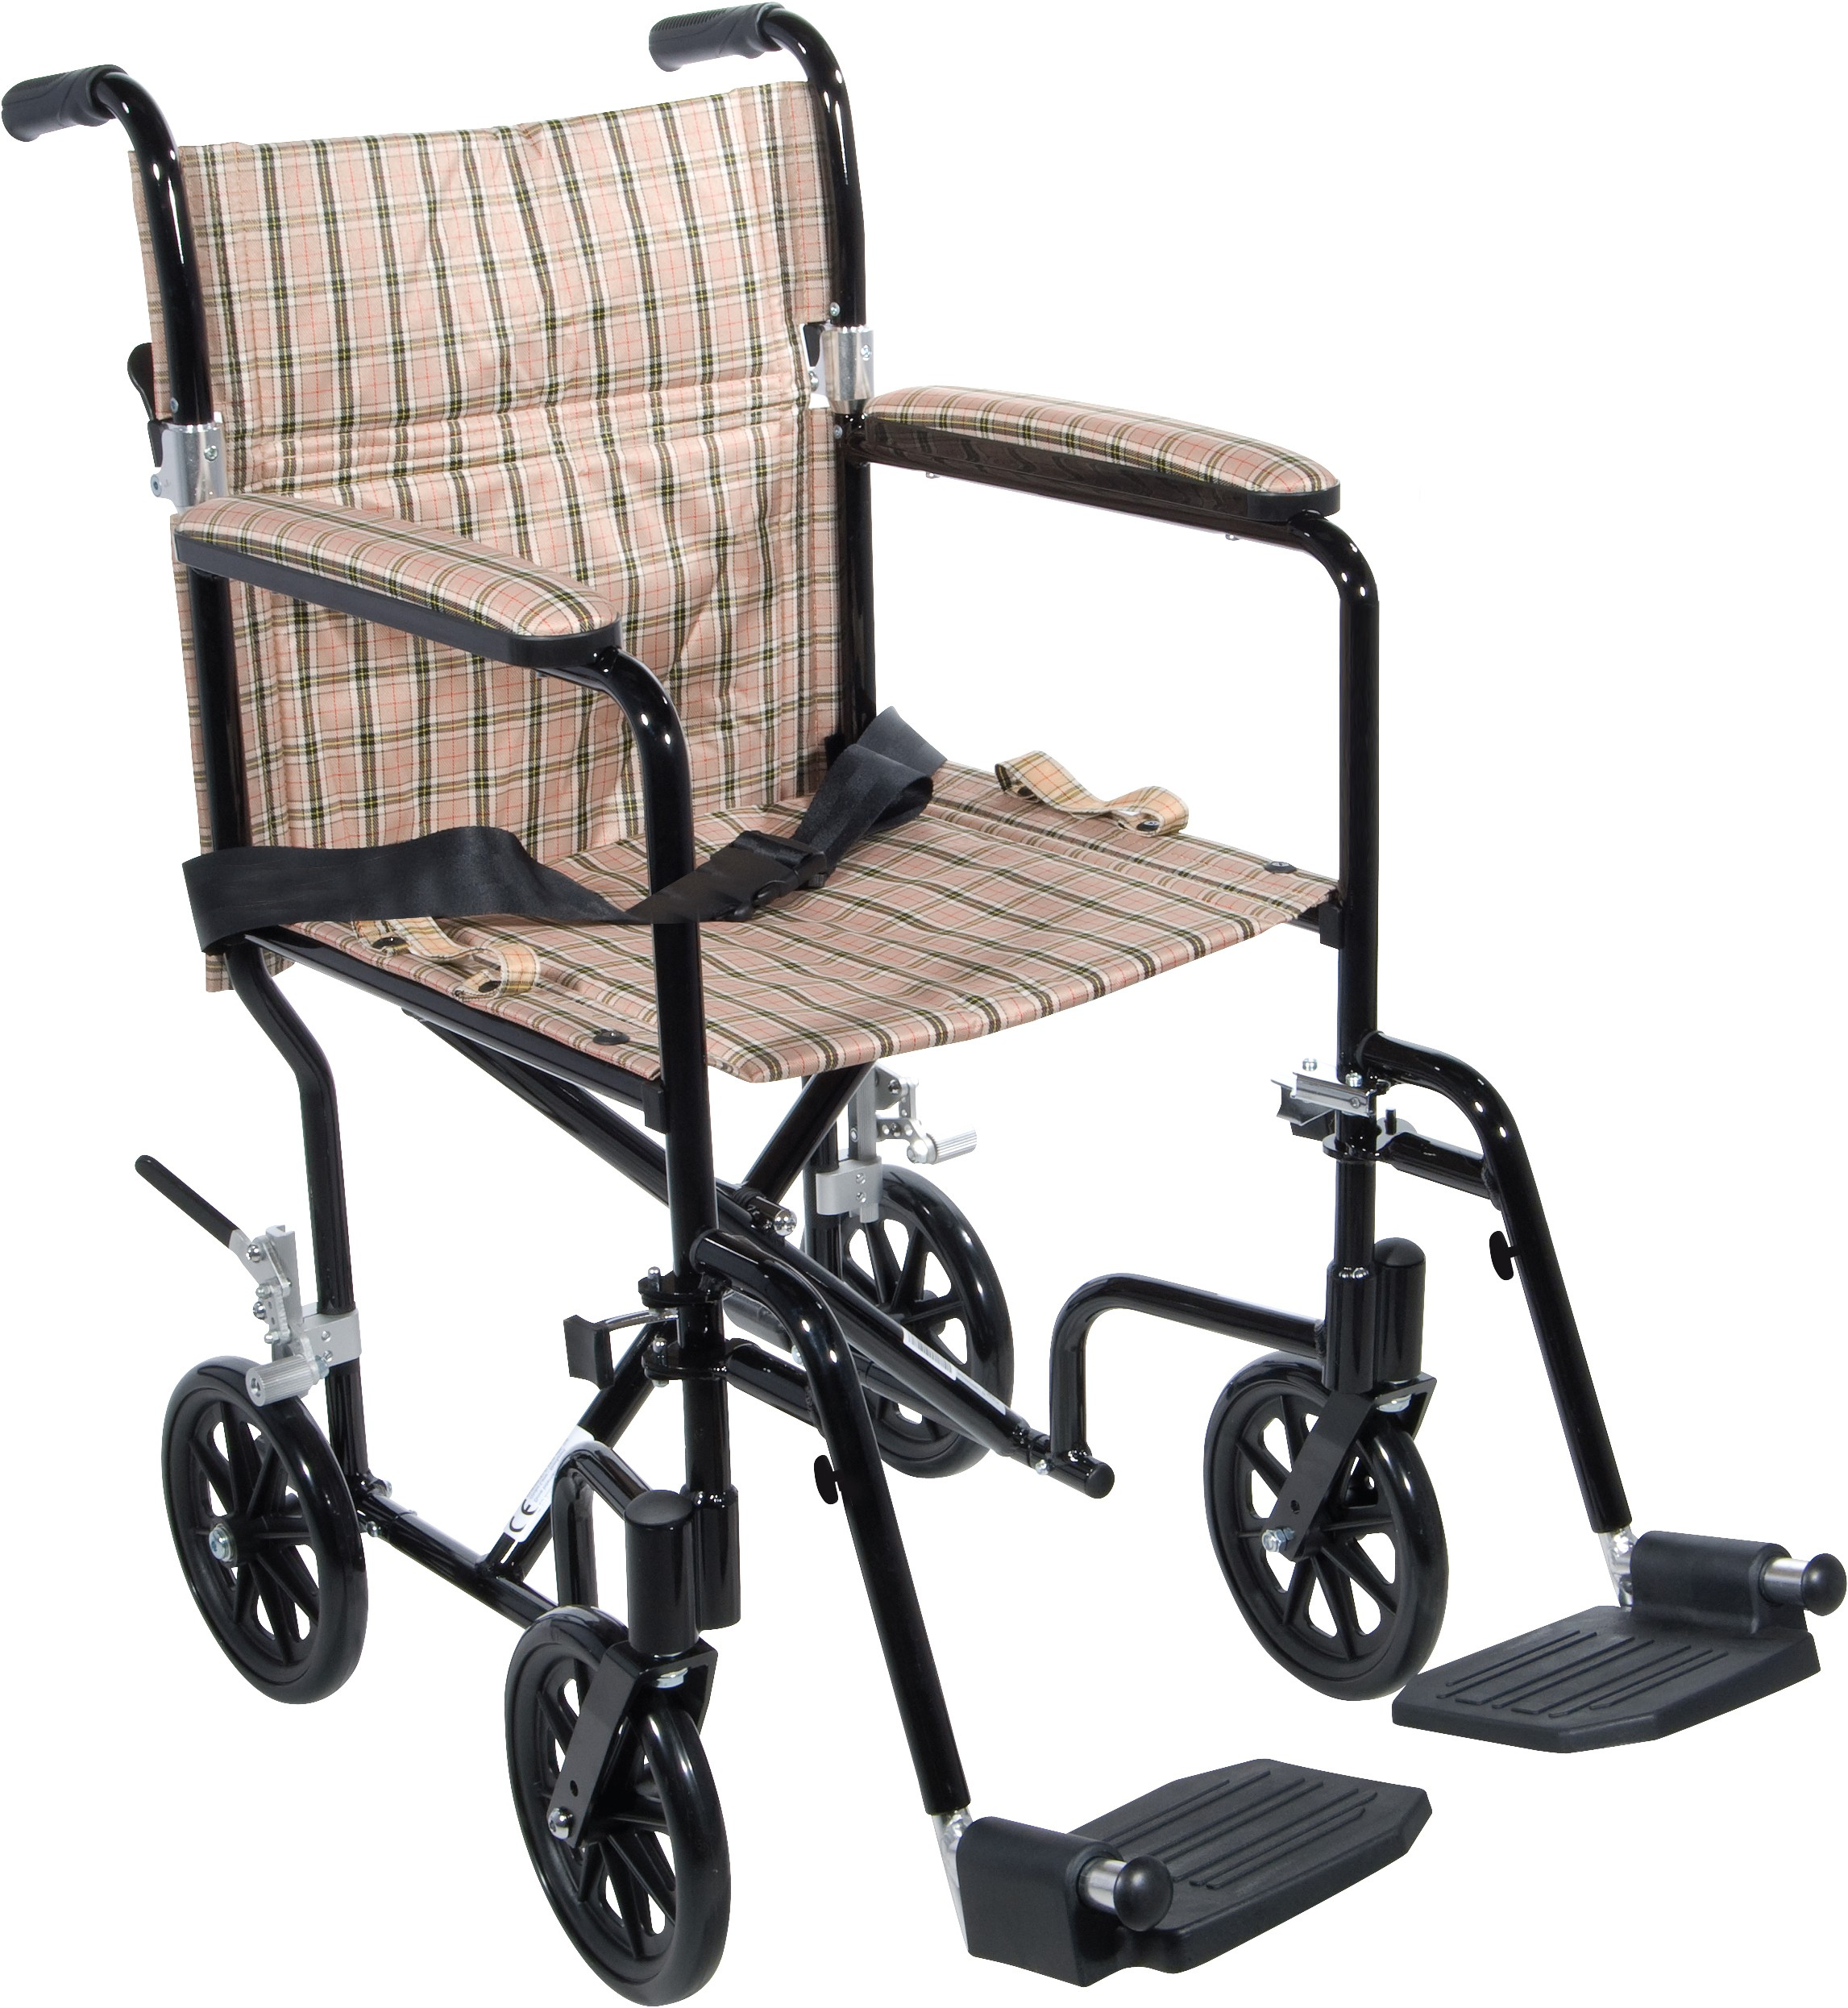 bariatric transport chair 24 seat hanging basket drive medical deluxe fly weight aluminum